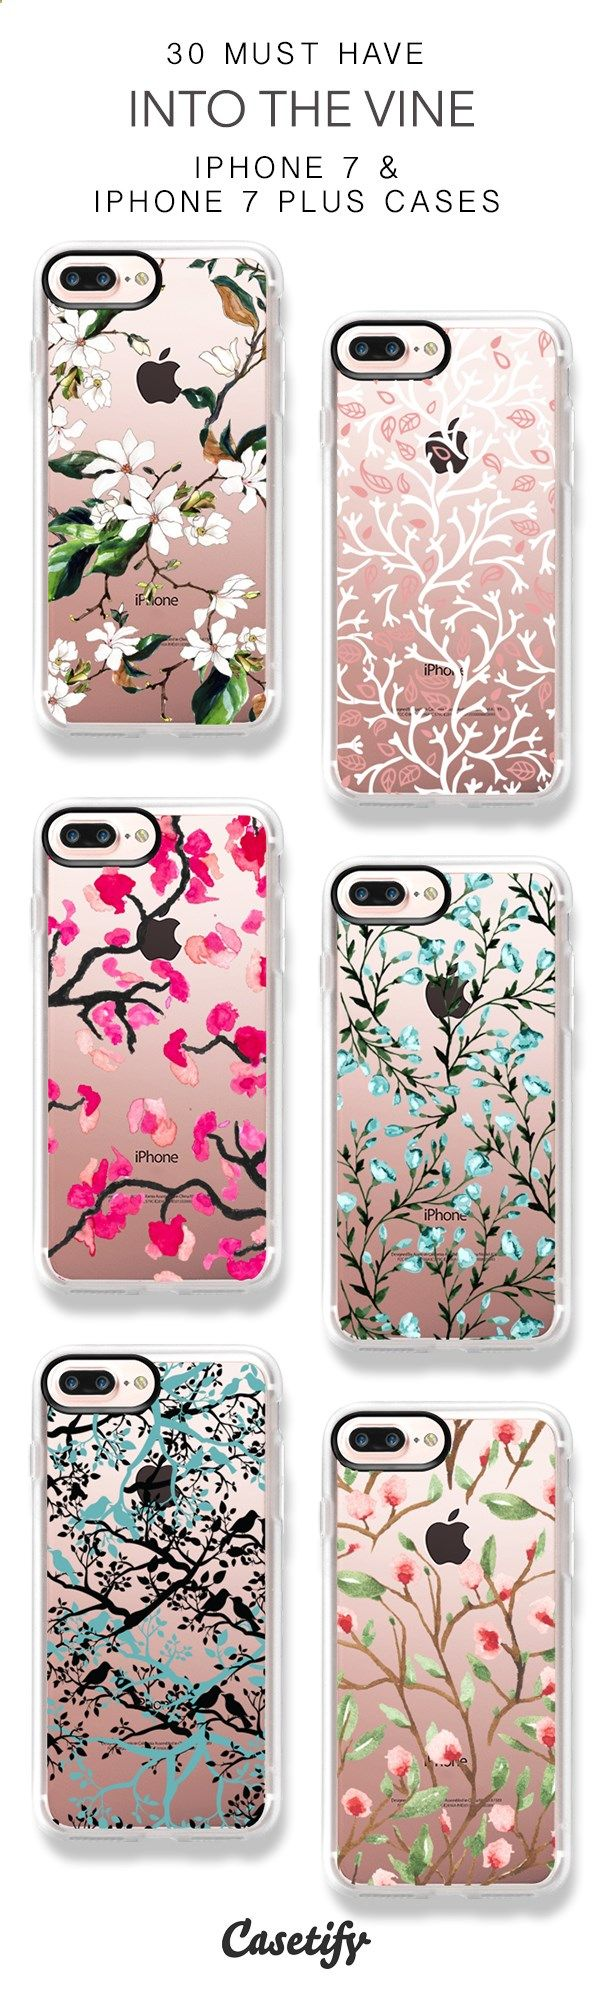 Phone Cases - 30 Most Popular Into The Vine iPhone 7 Cases and iPhone 7 Plus Cases. More Tree iPhone case here > www.casetify.com/...